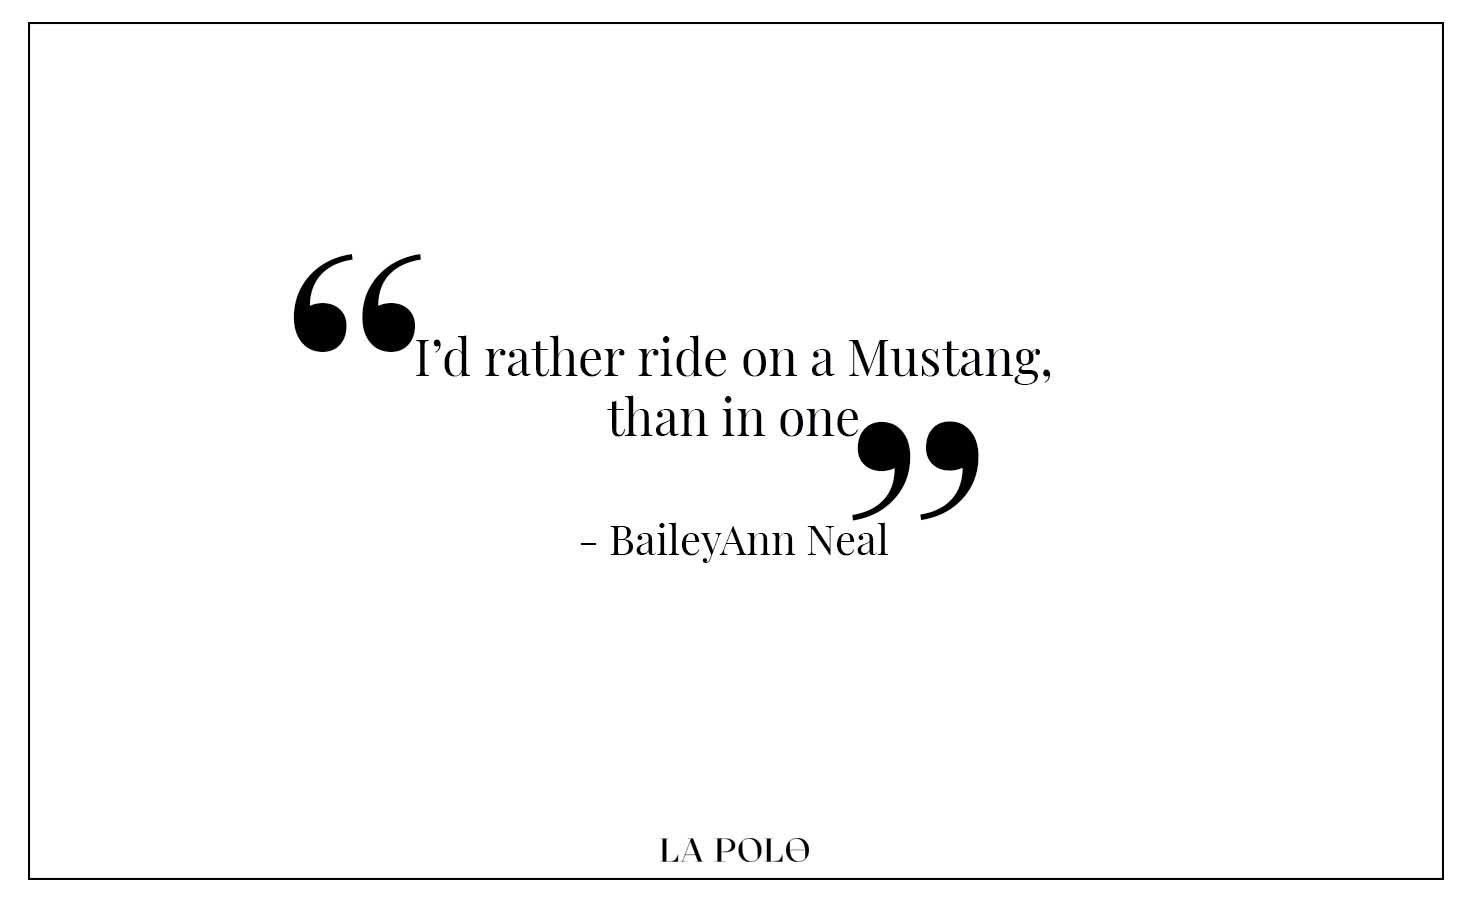 BaileyAnn Neal quotes